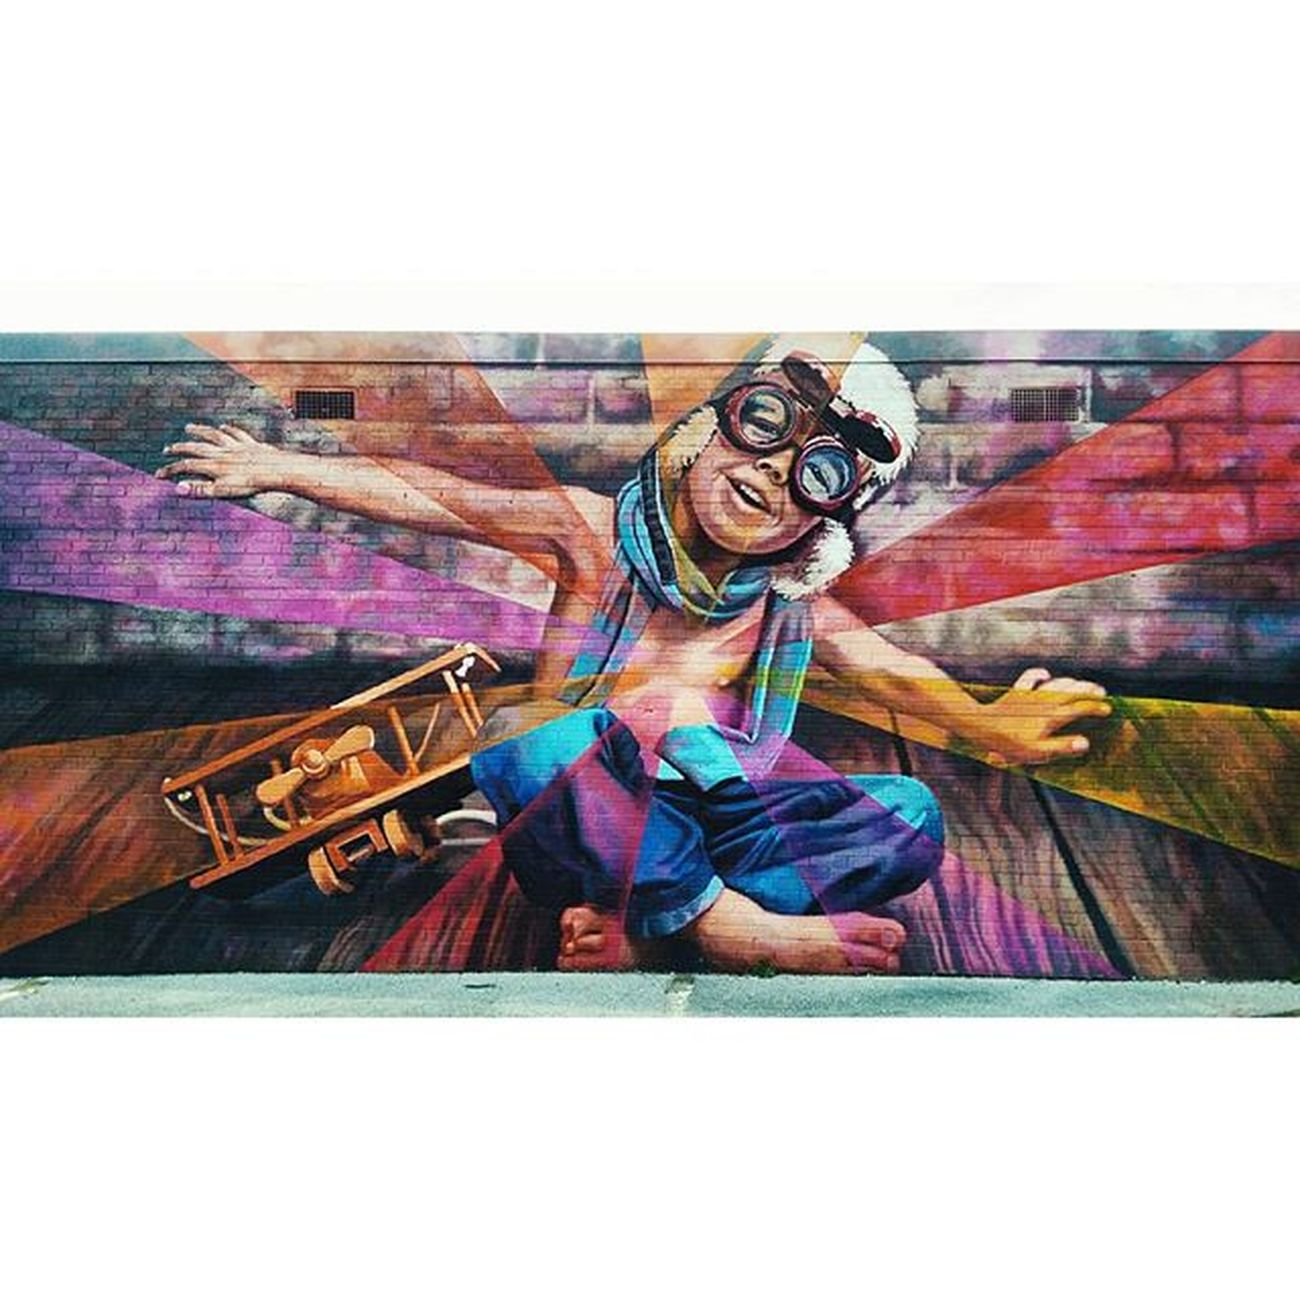 Alikay Wallpainting HTers Hashtags Ps Amazing Art Artistic Bestphoto Colorfull Colors Cool Instaphoto Instapic Instashot Ph Photo Photograph Photography Photooftheday Photos Photoshop Photoshot Photowall Picoftheday